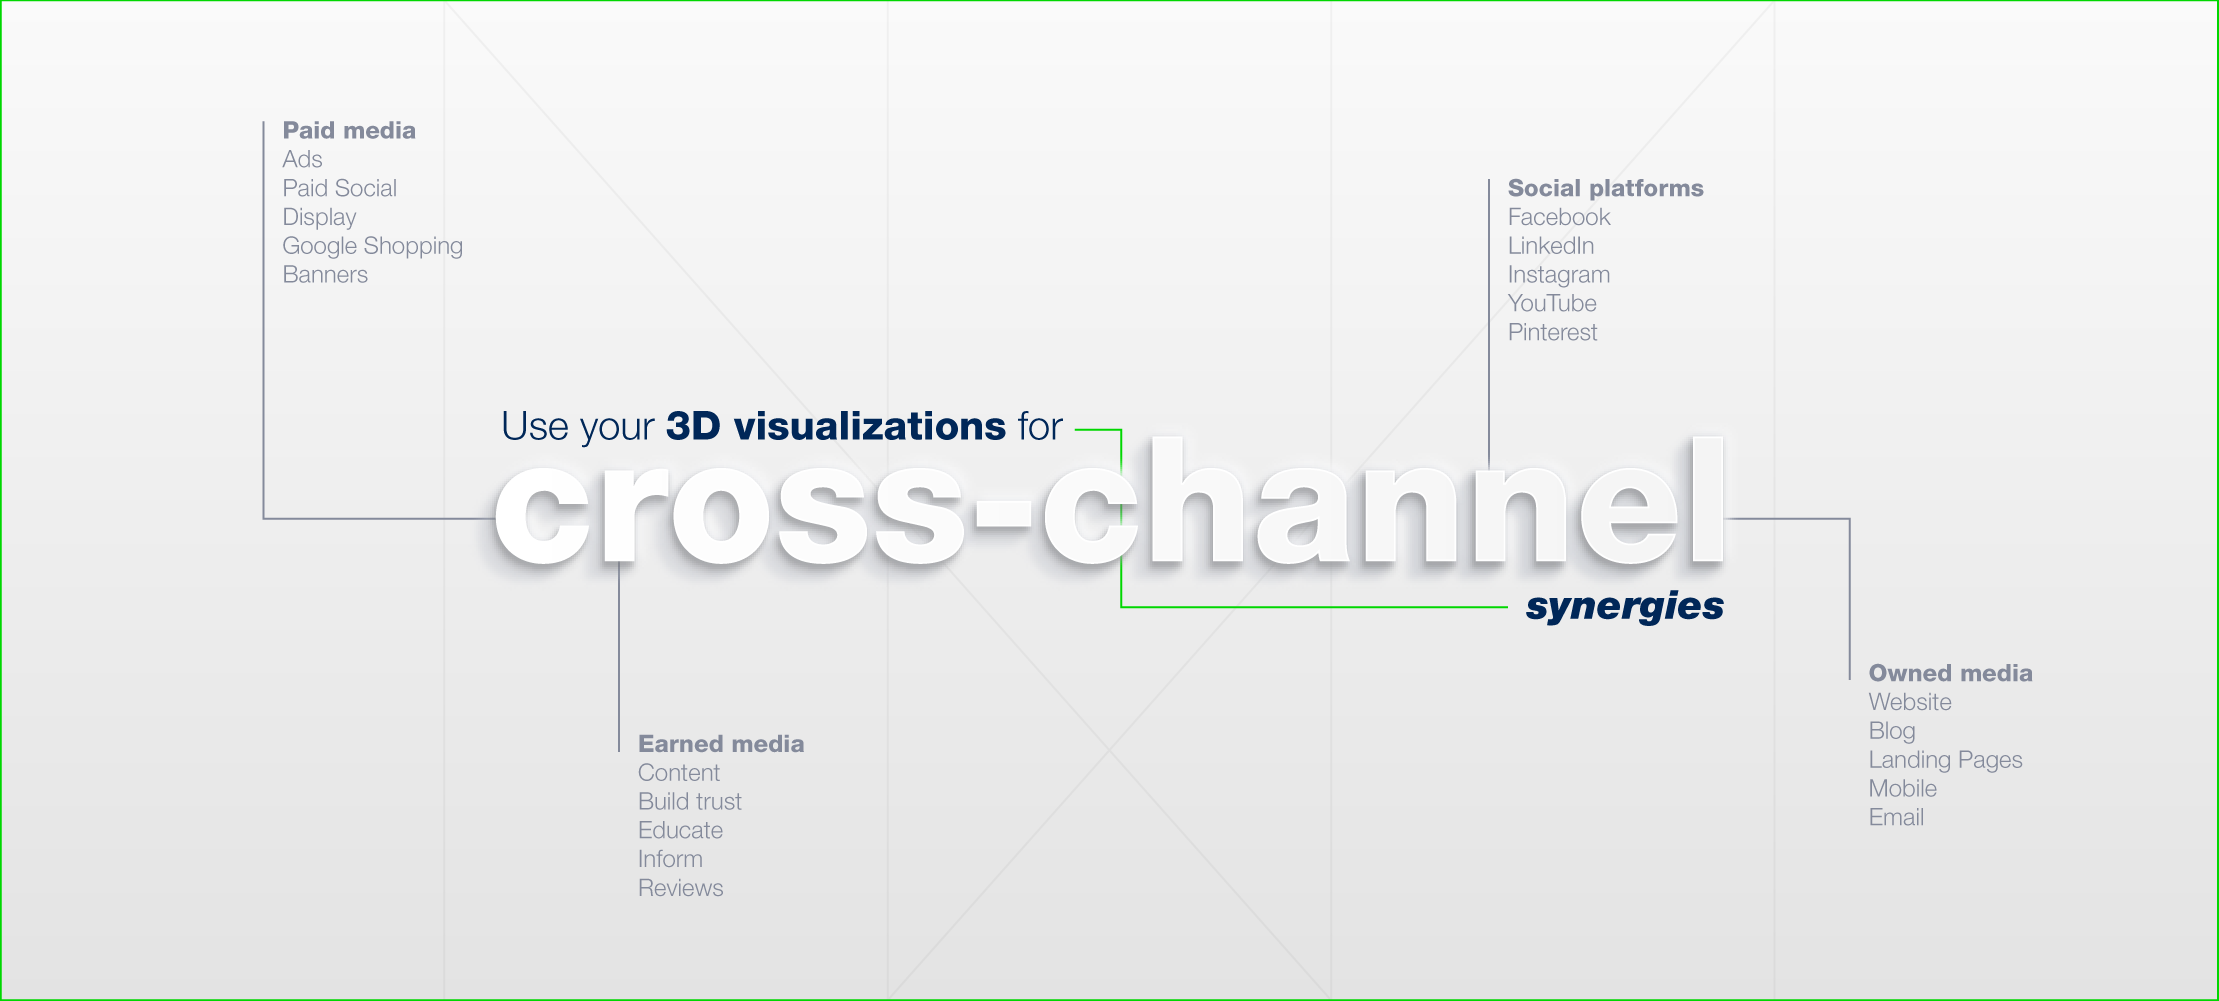 Use 3D visualizations for cross-channel promotion